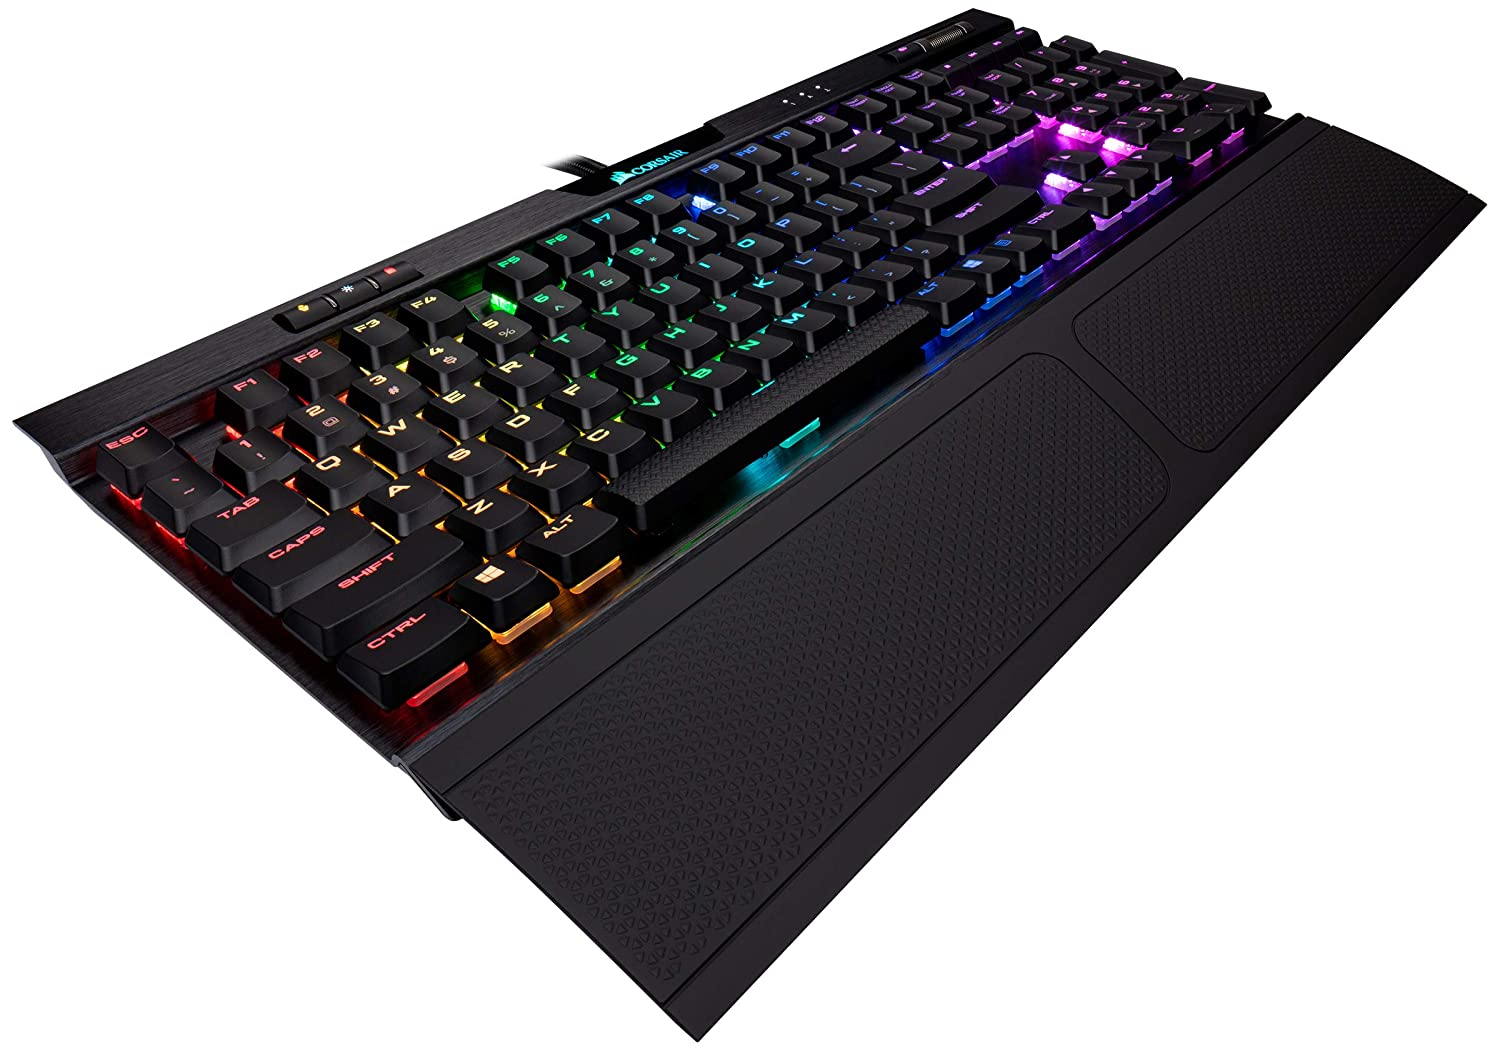 CORSAIR K70 RGB MK.2 RAPIDFIRE Low Profile - Backlit RGB LED - USB Passthrough & Media Controls - Fastest & Linear Low Profile - Cherry MX Speed